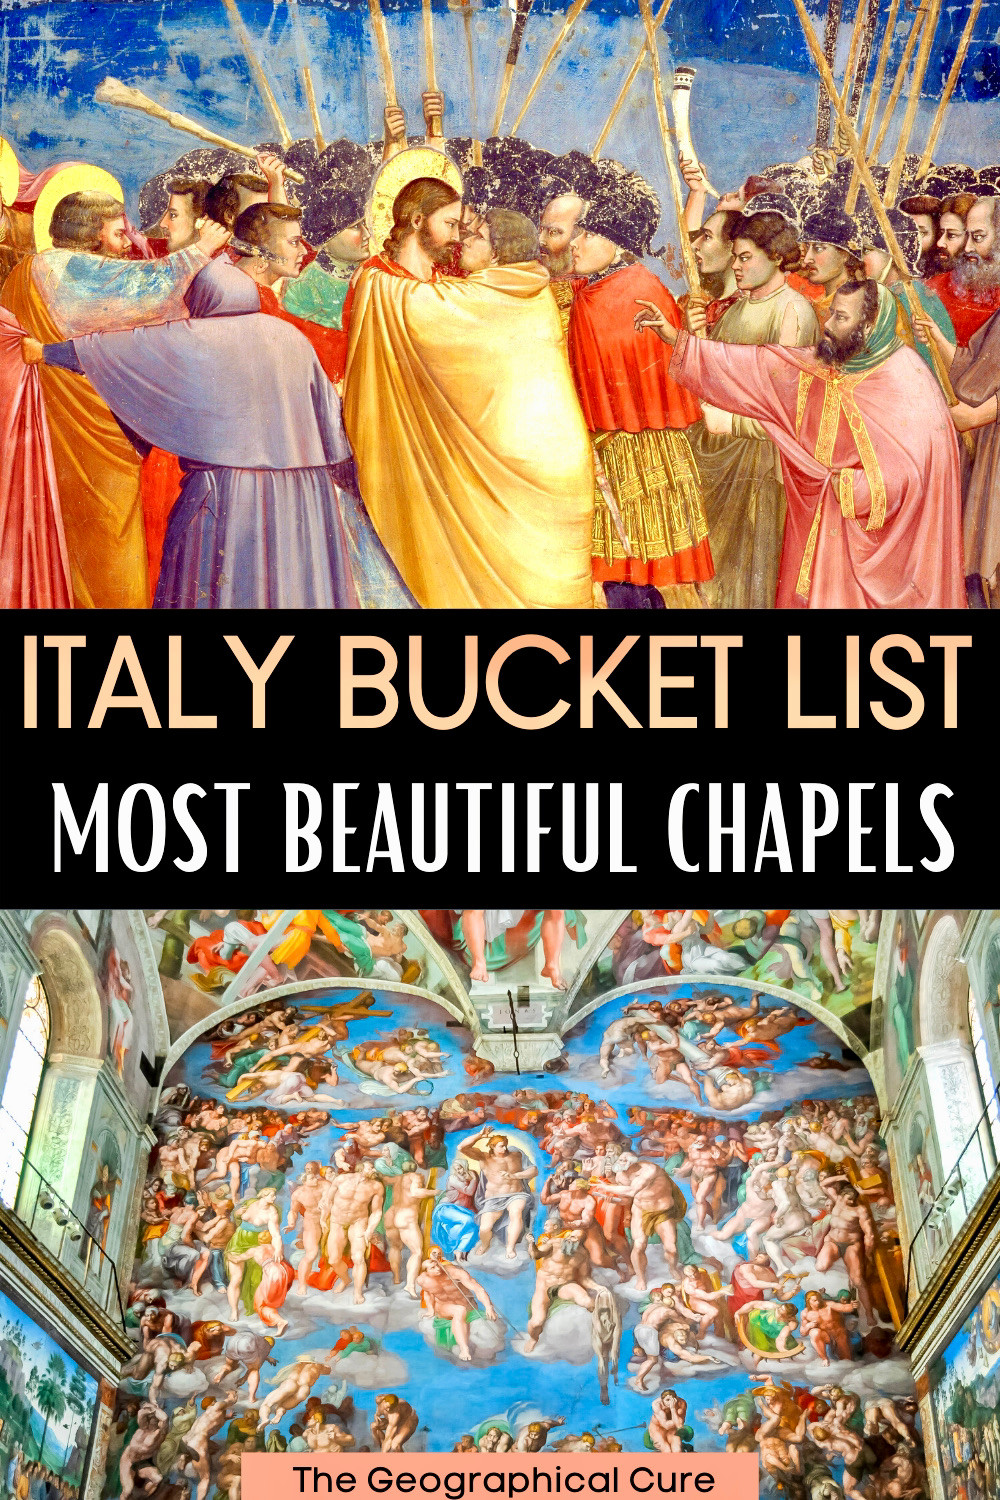 guide to Italy's most beautiful chapels